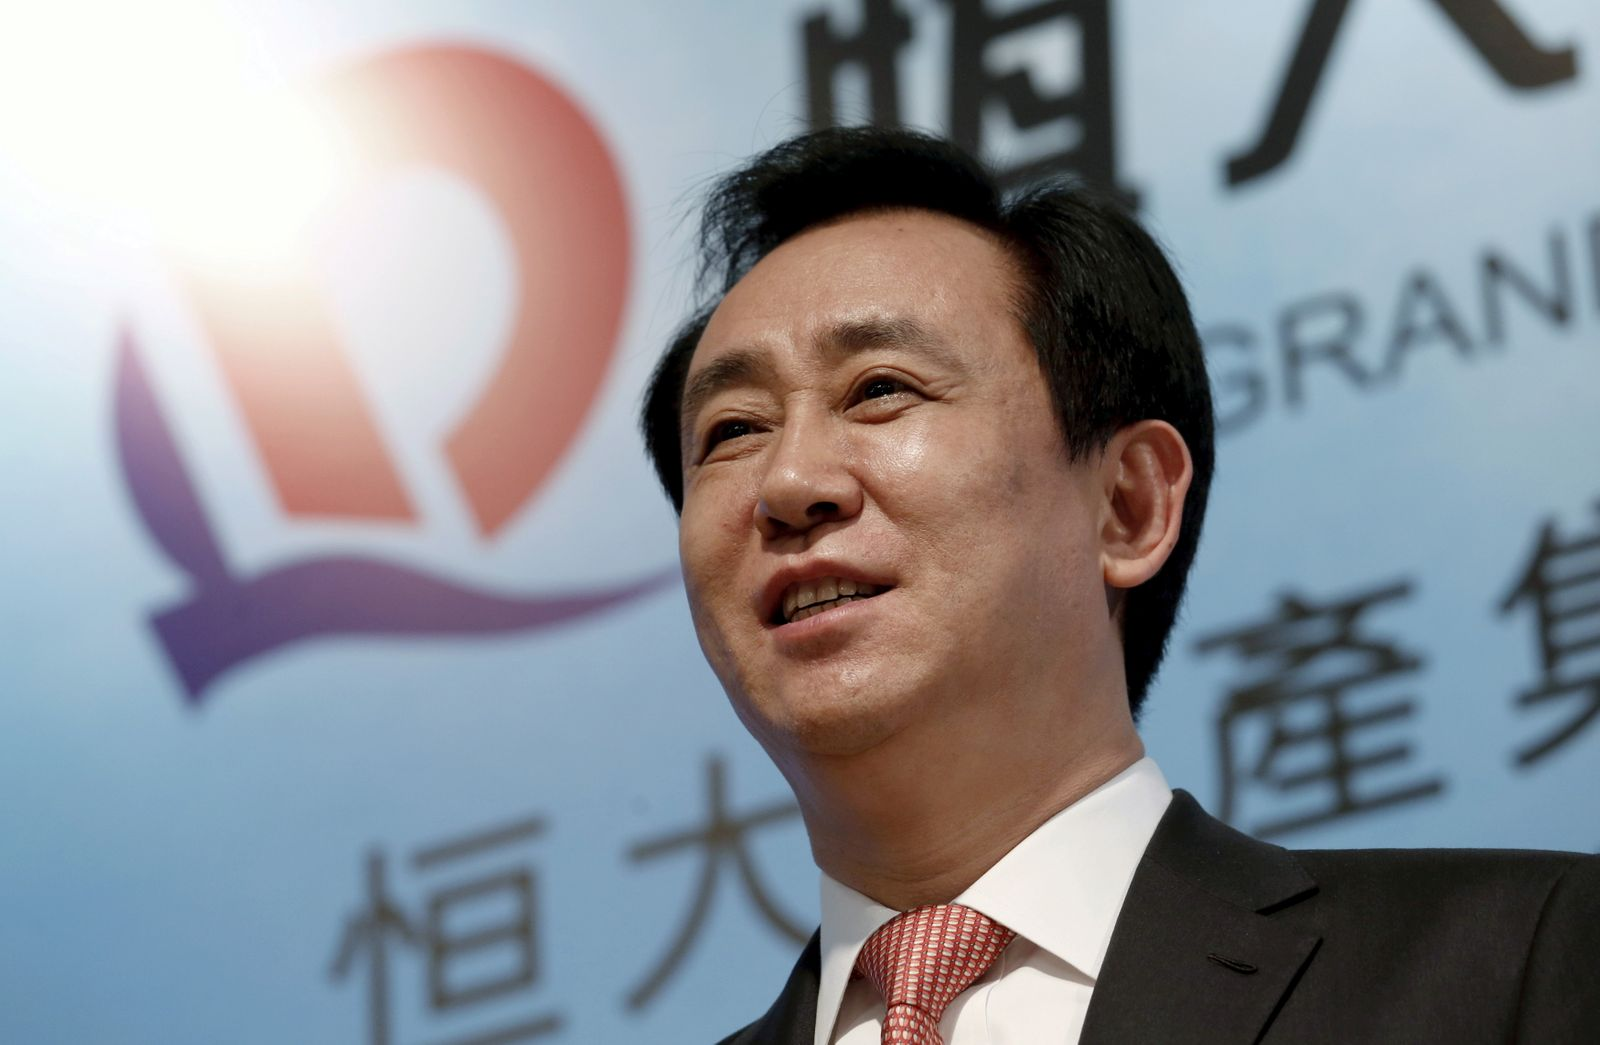 FILE PHOTO: Hui Ka Yan, chairman of Evergrande Real Estate Group Ltd, attends a news conference on annual results in Hong Kong